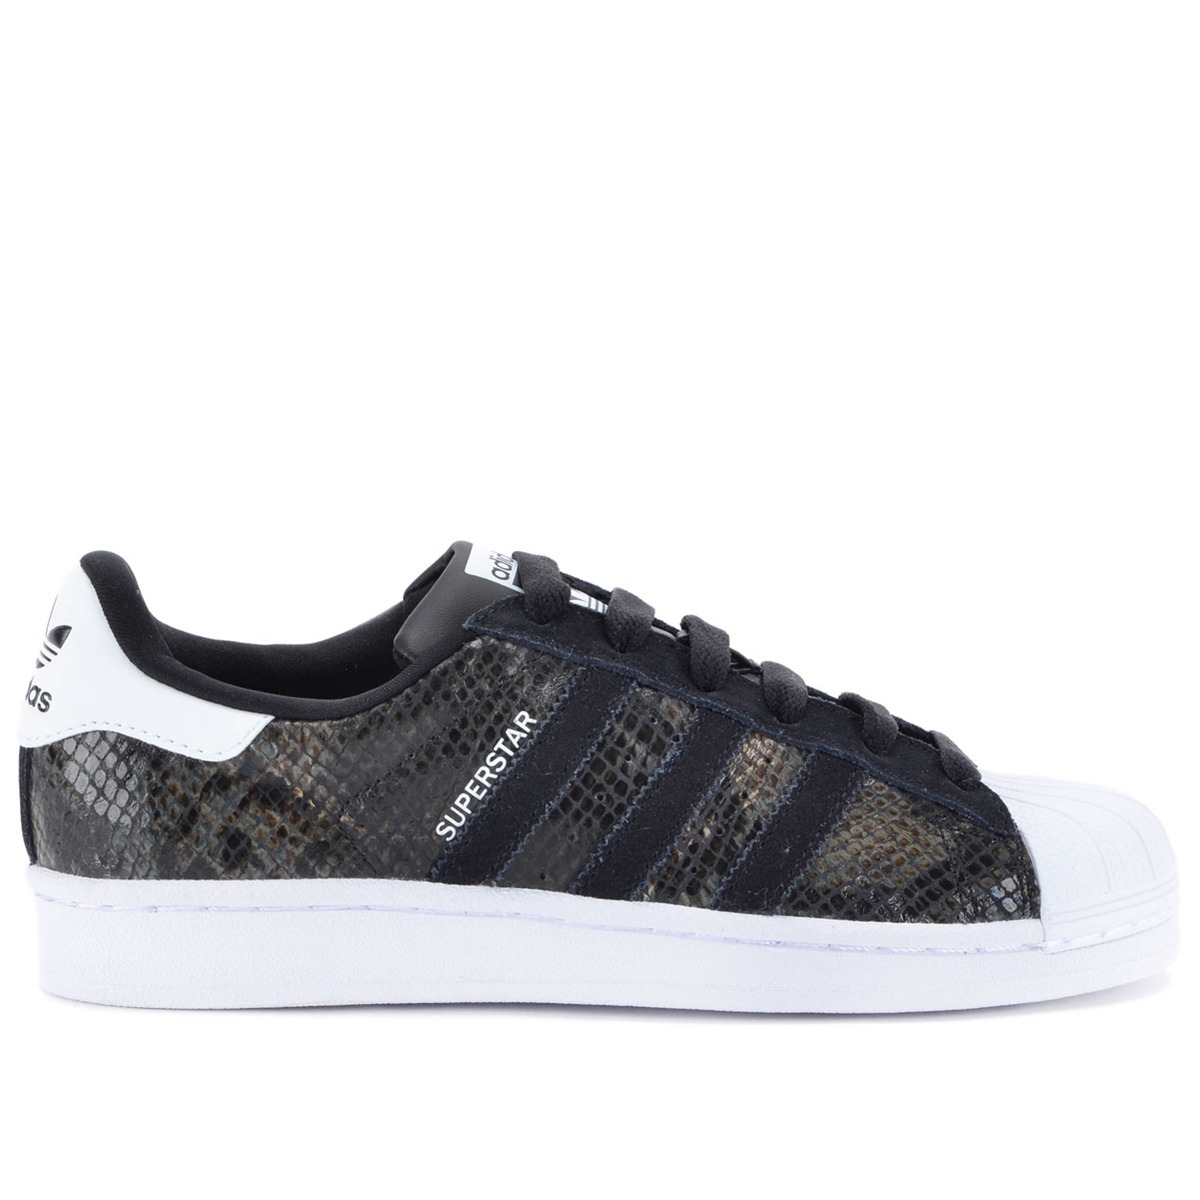 uehsi adidas superstar black black adidas superstar classic black and white